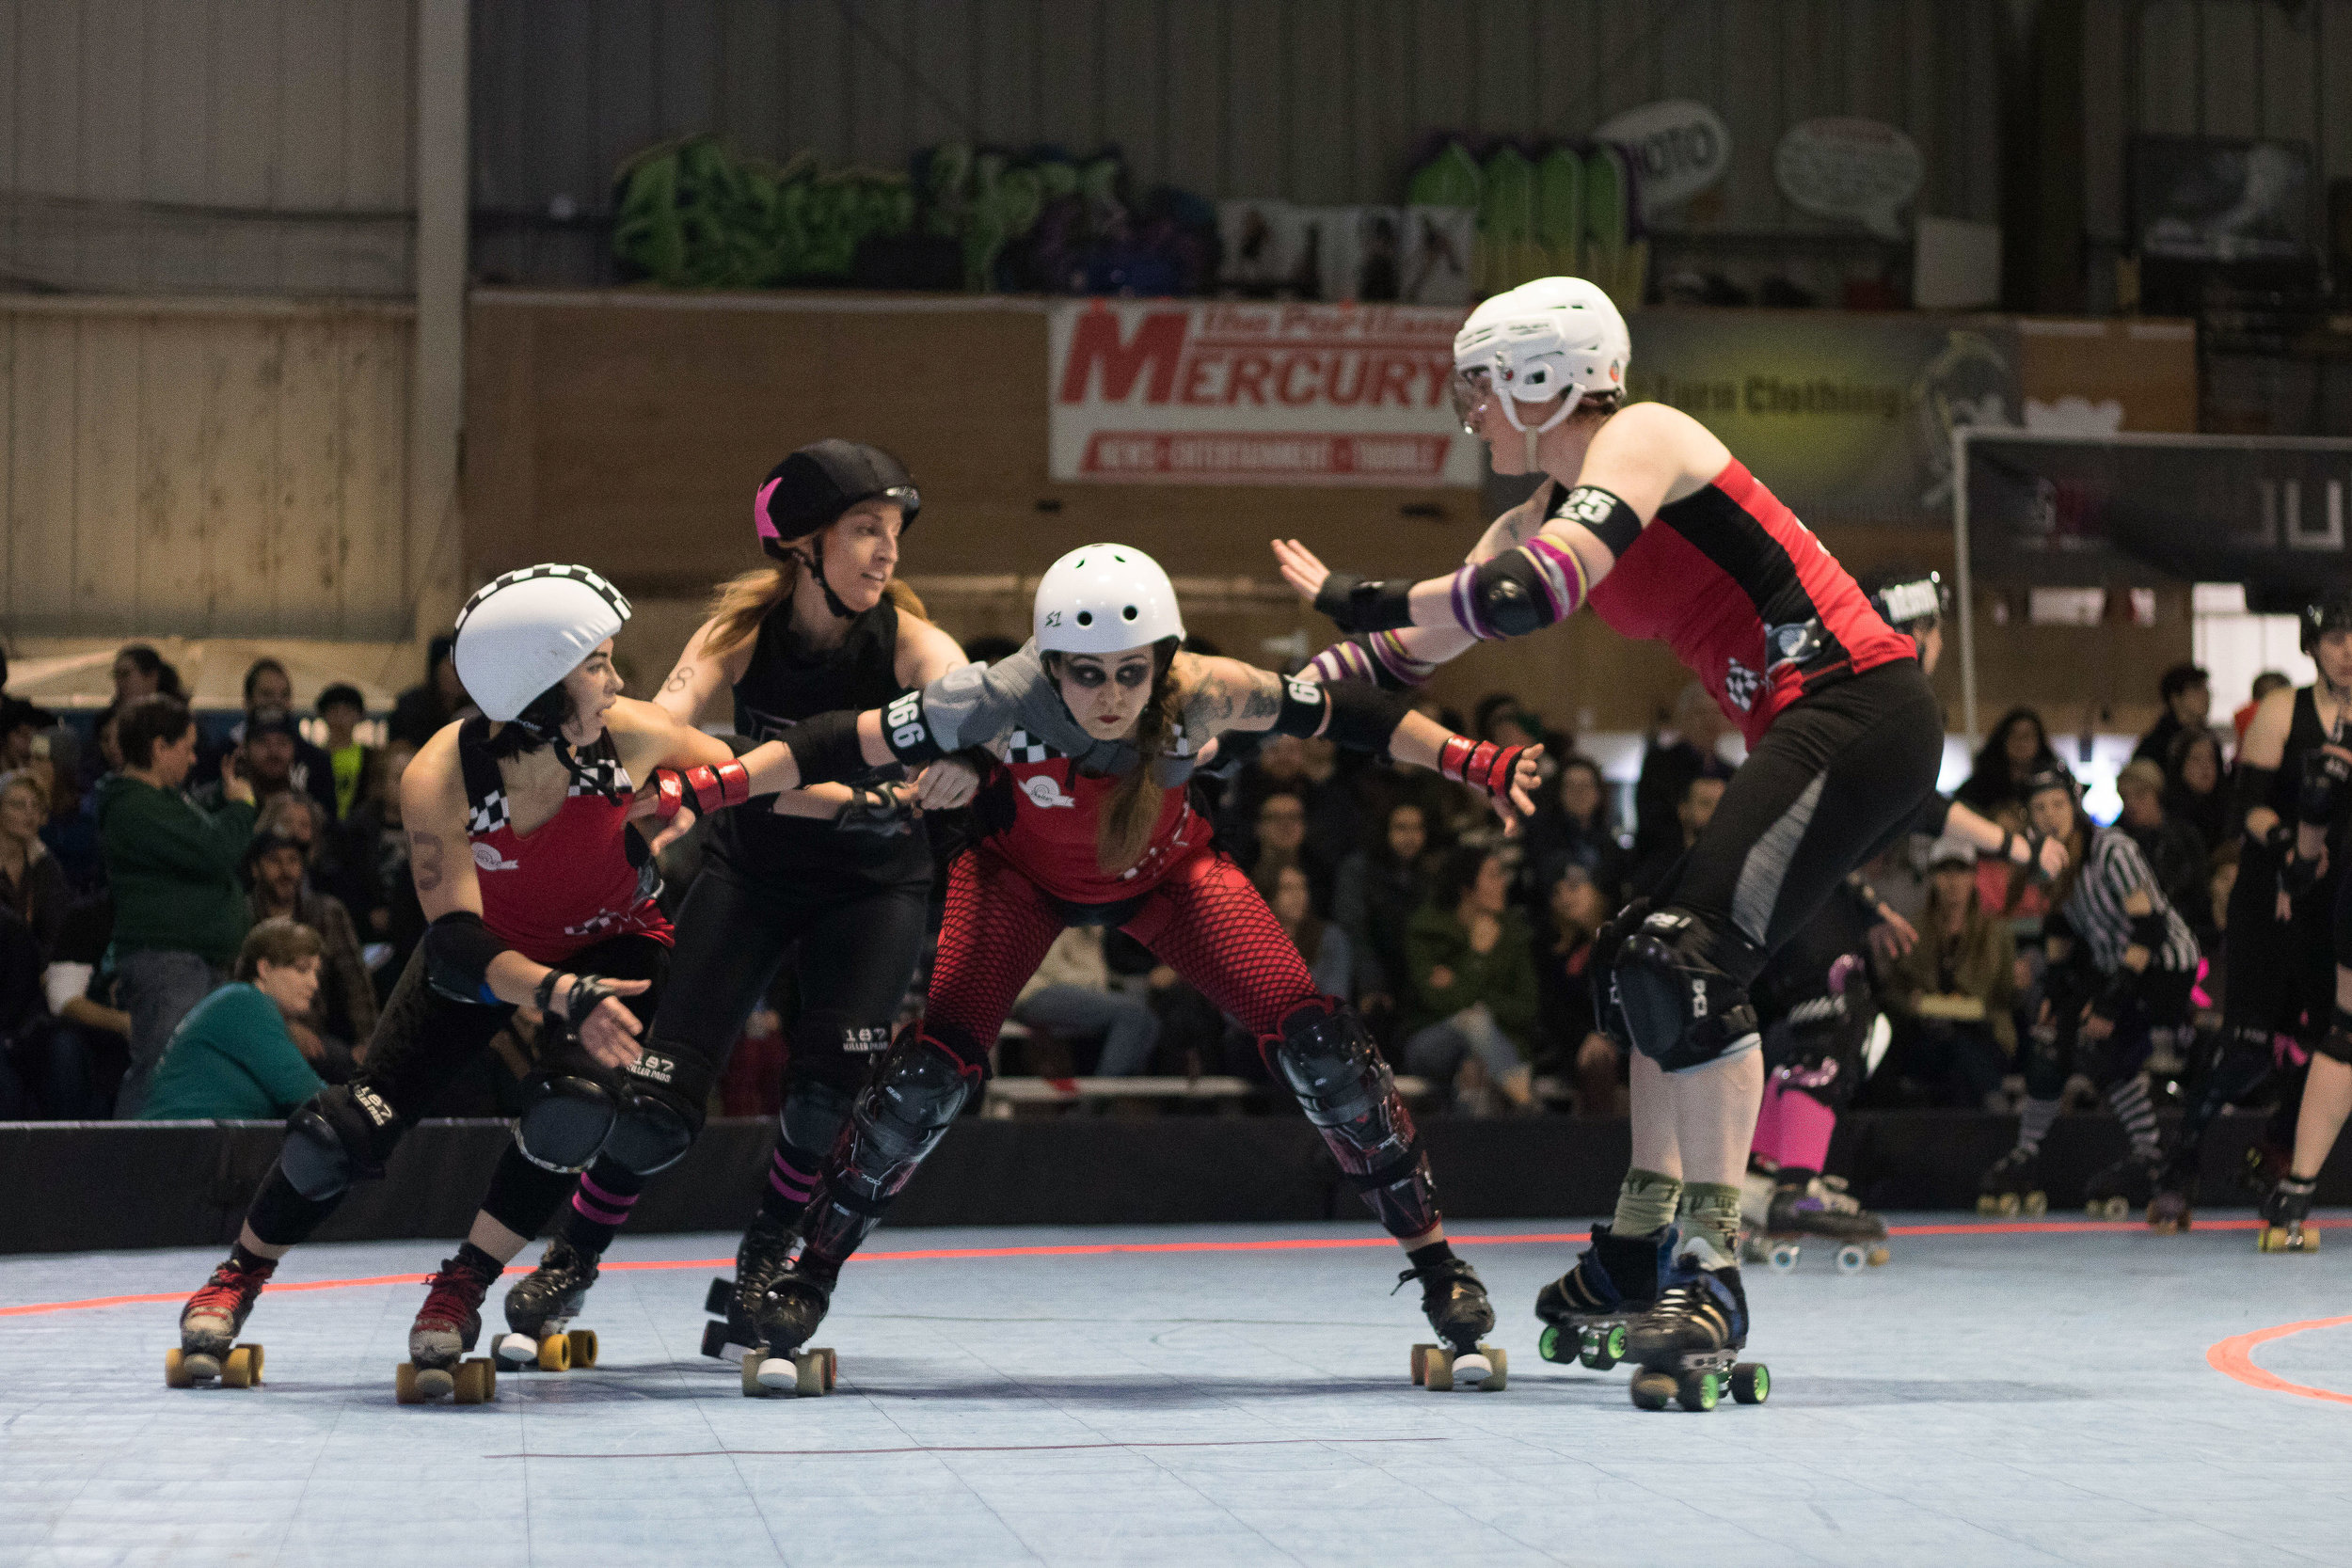 Smelter Skelter (center) and Break Neck Betties teammates block players from opposing team Guns N Rollers at Oaks Park in Portland, Ore., May 13, 2017. Guns N Rollers defeated the Break Neck Betties 226-222.